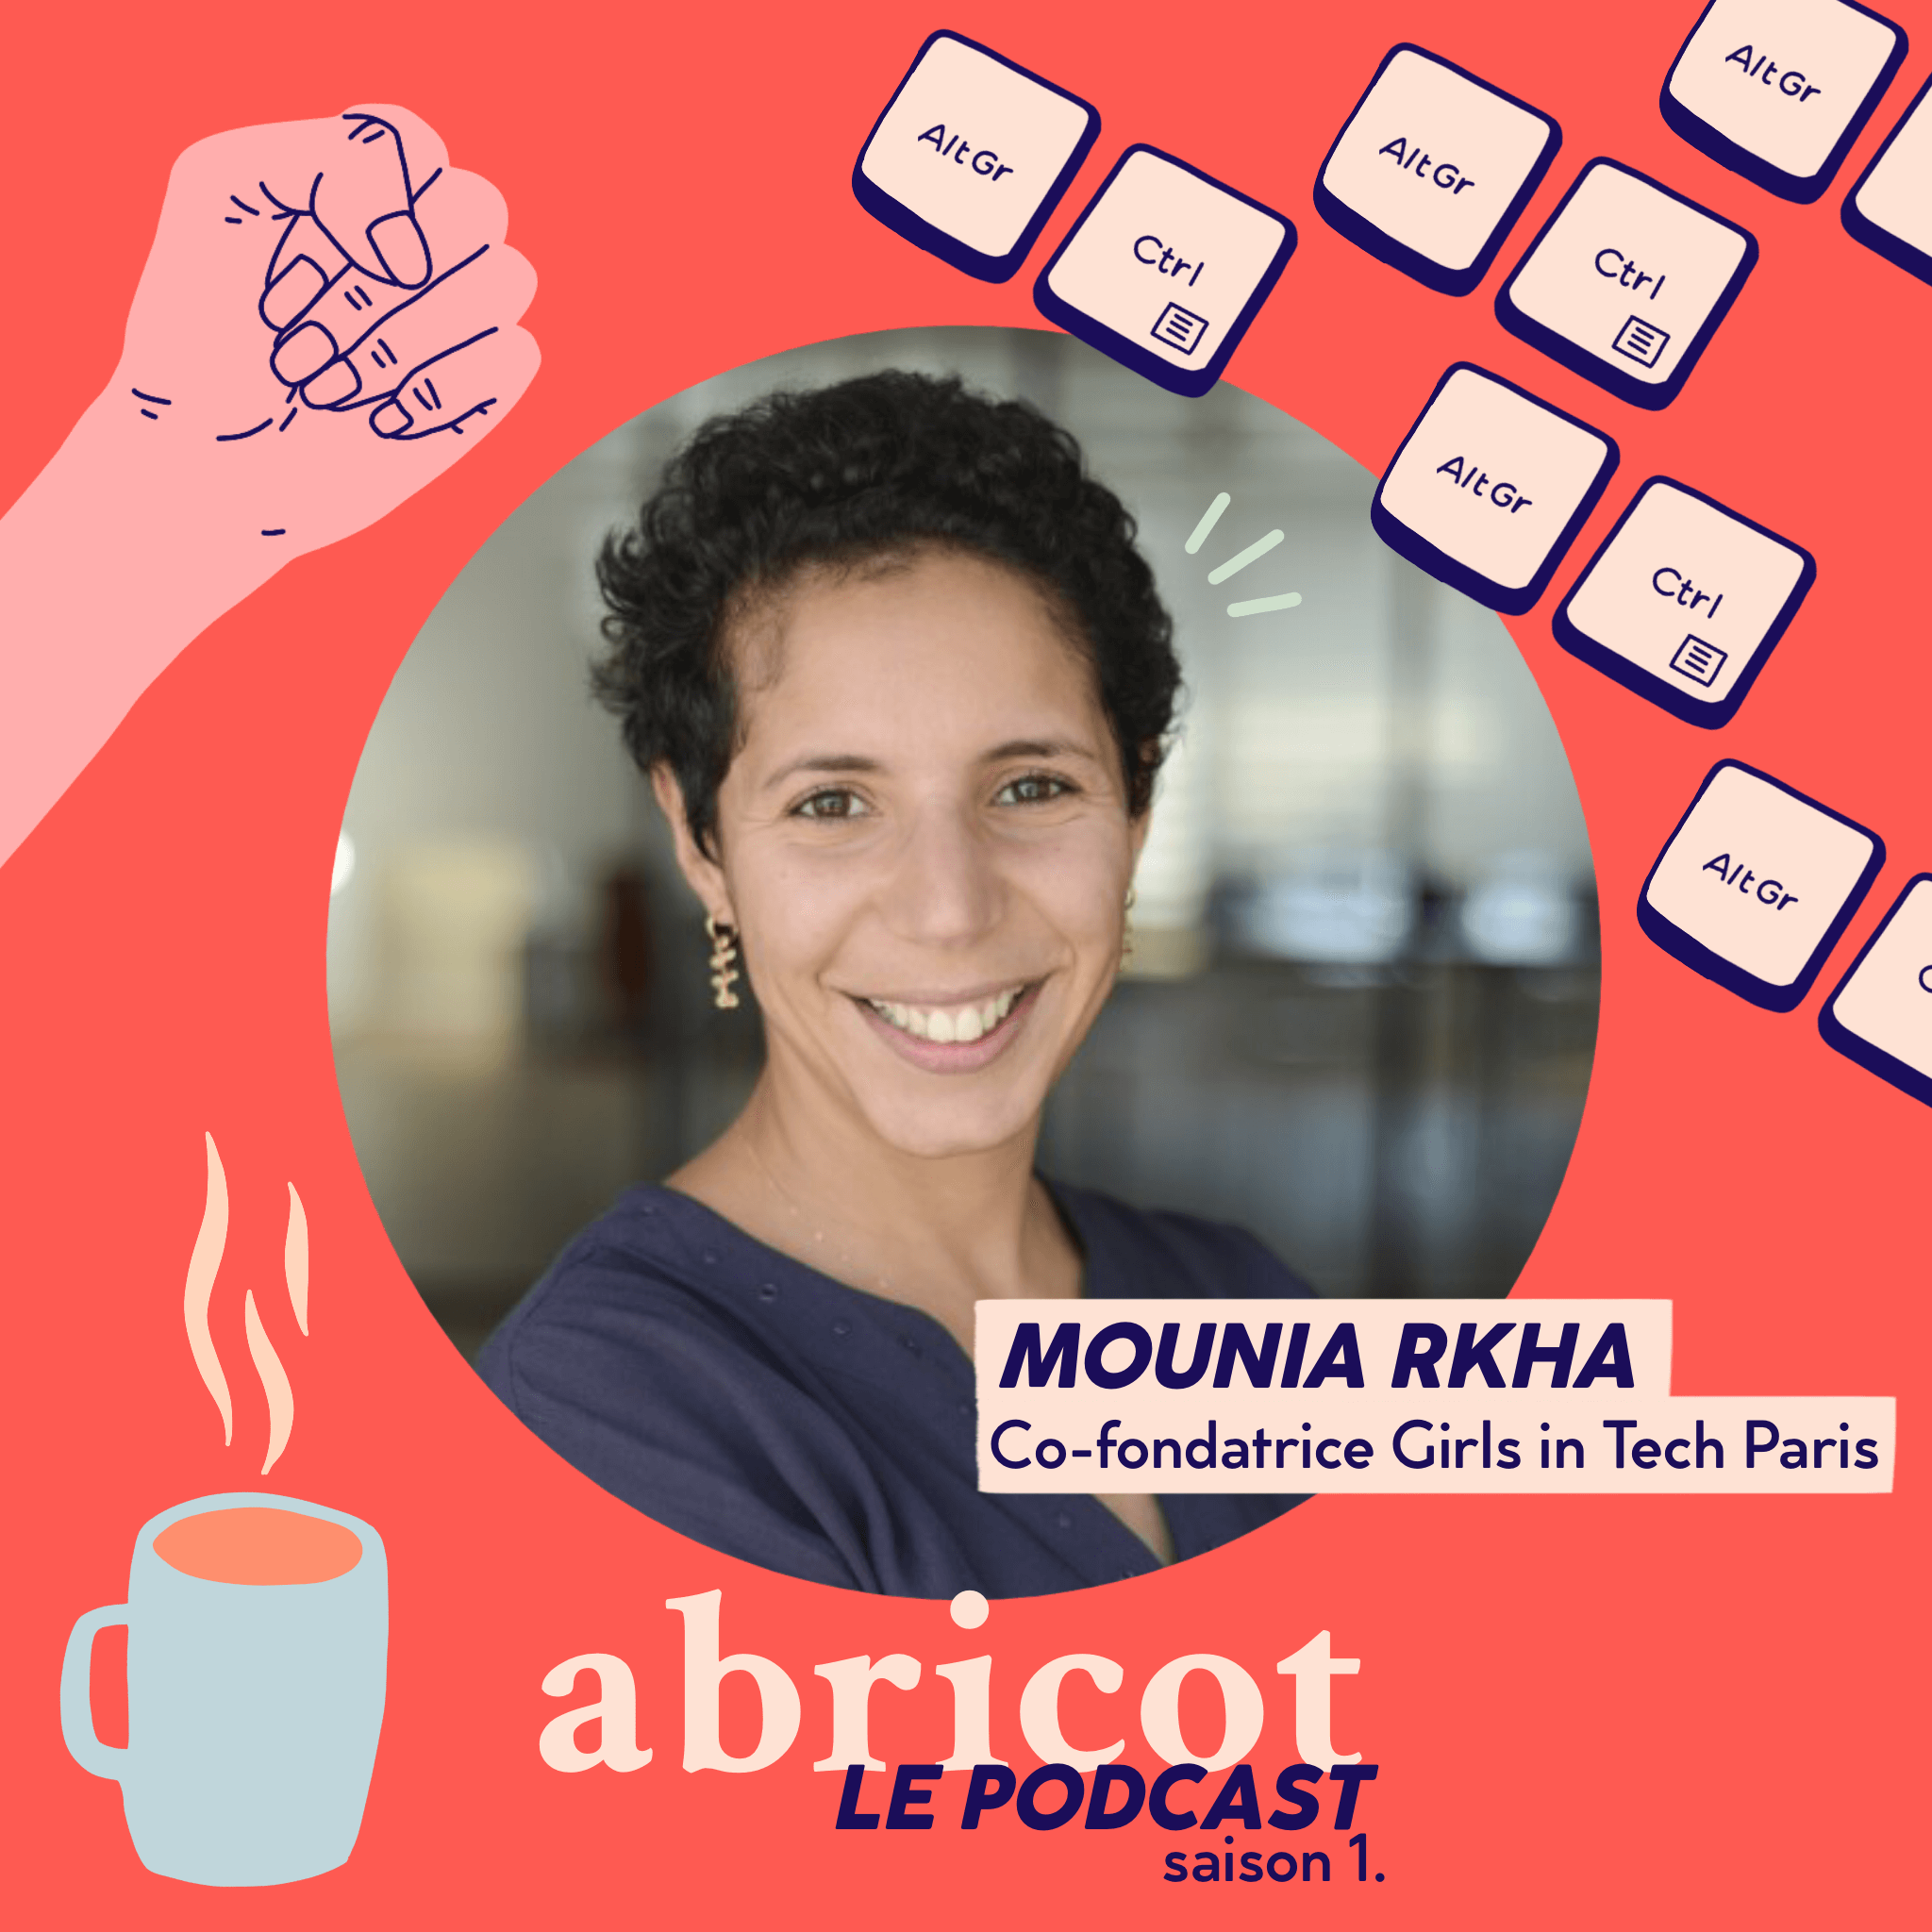 Podcast Abricot épisode 3. Mounia Rkha